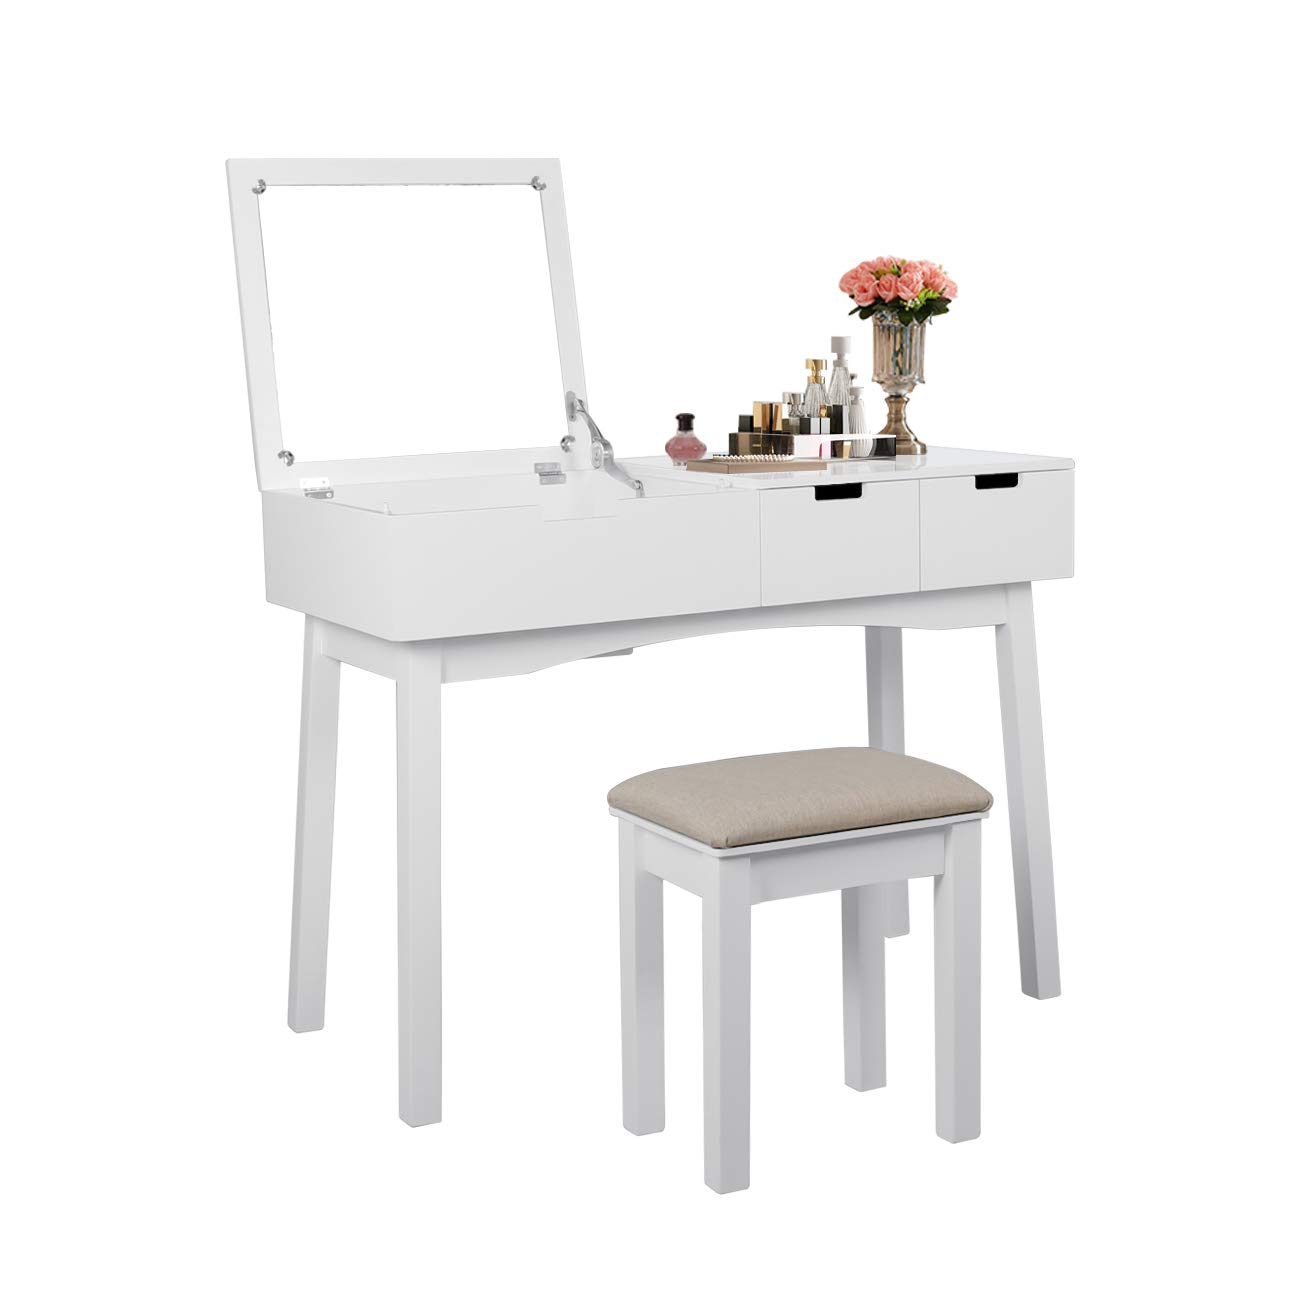 AILEEKISS Vanity Table with Large-Sized Flip Top Mirror Makeup Dressing Table with a Cushion Stool Set Writing Desk with Two Drawers One Small Removable Organizers Easy Assembly